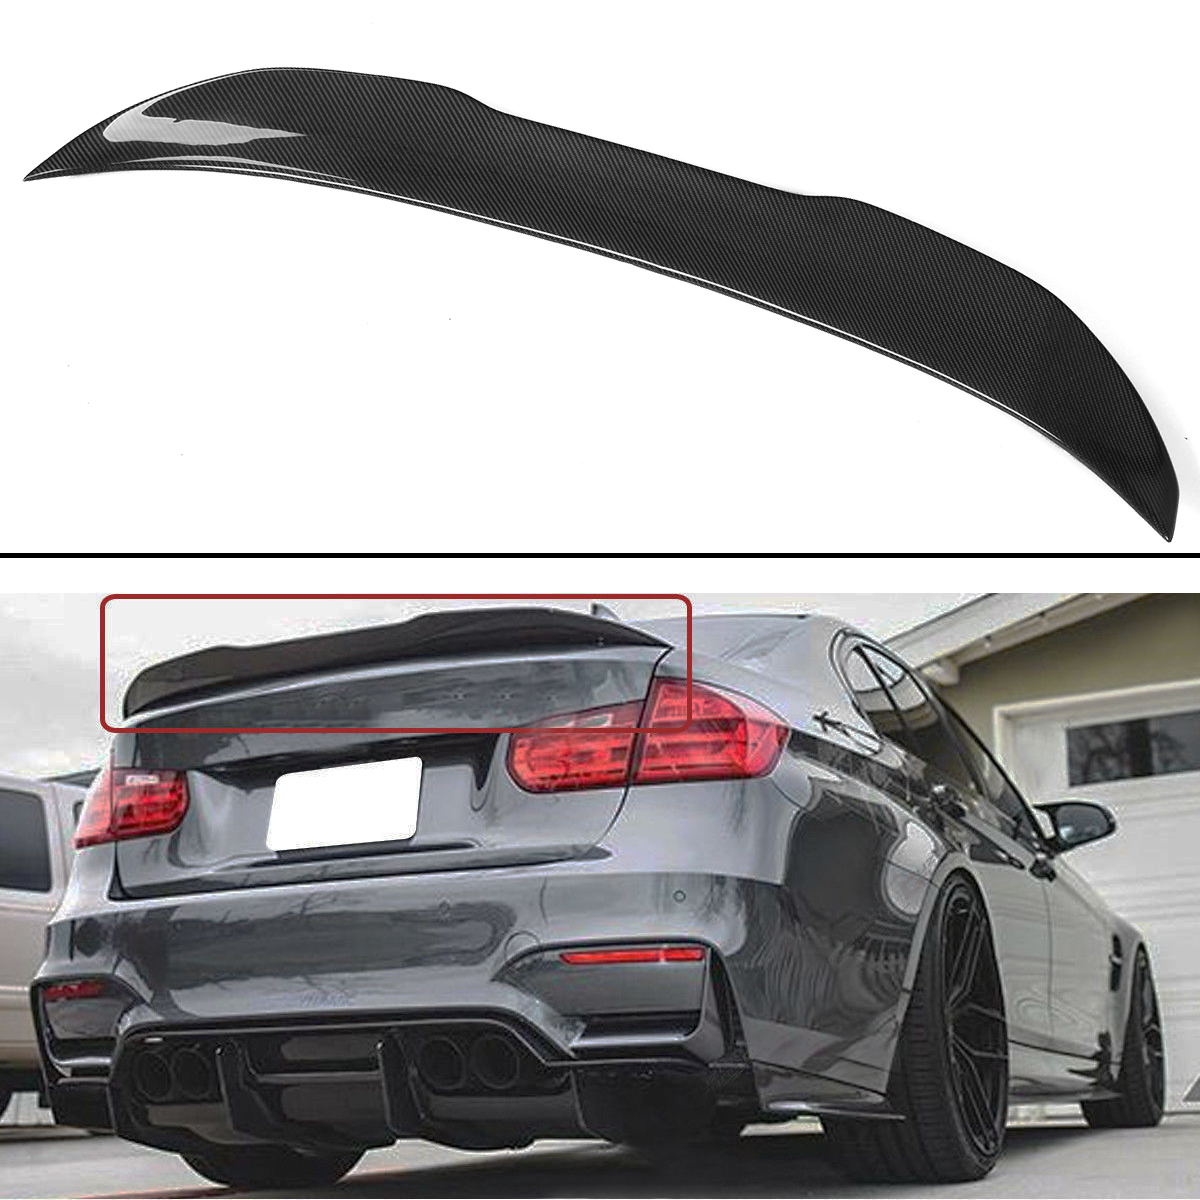 Real Carbon Fiber HighKick PSM Style Lid Spoiler Wing Trunk Spoiler Wings Lip for BMW 3 Series Sedan F30 330i 335i 2013-2018Real Carbon Fiber HighKick PSM Style Lid Spoiler Wing Trunk Spoiler Wings Lip for BMW 3 Series Sedan F30 330i 335i 2013-2018